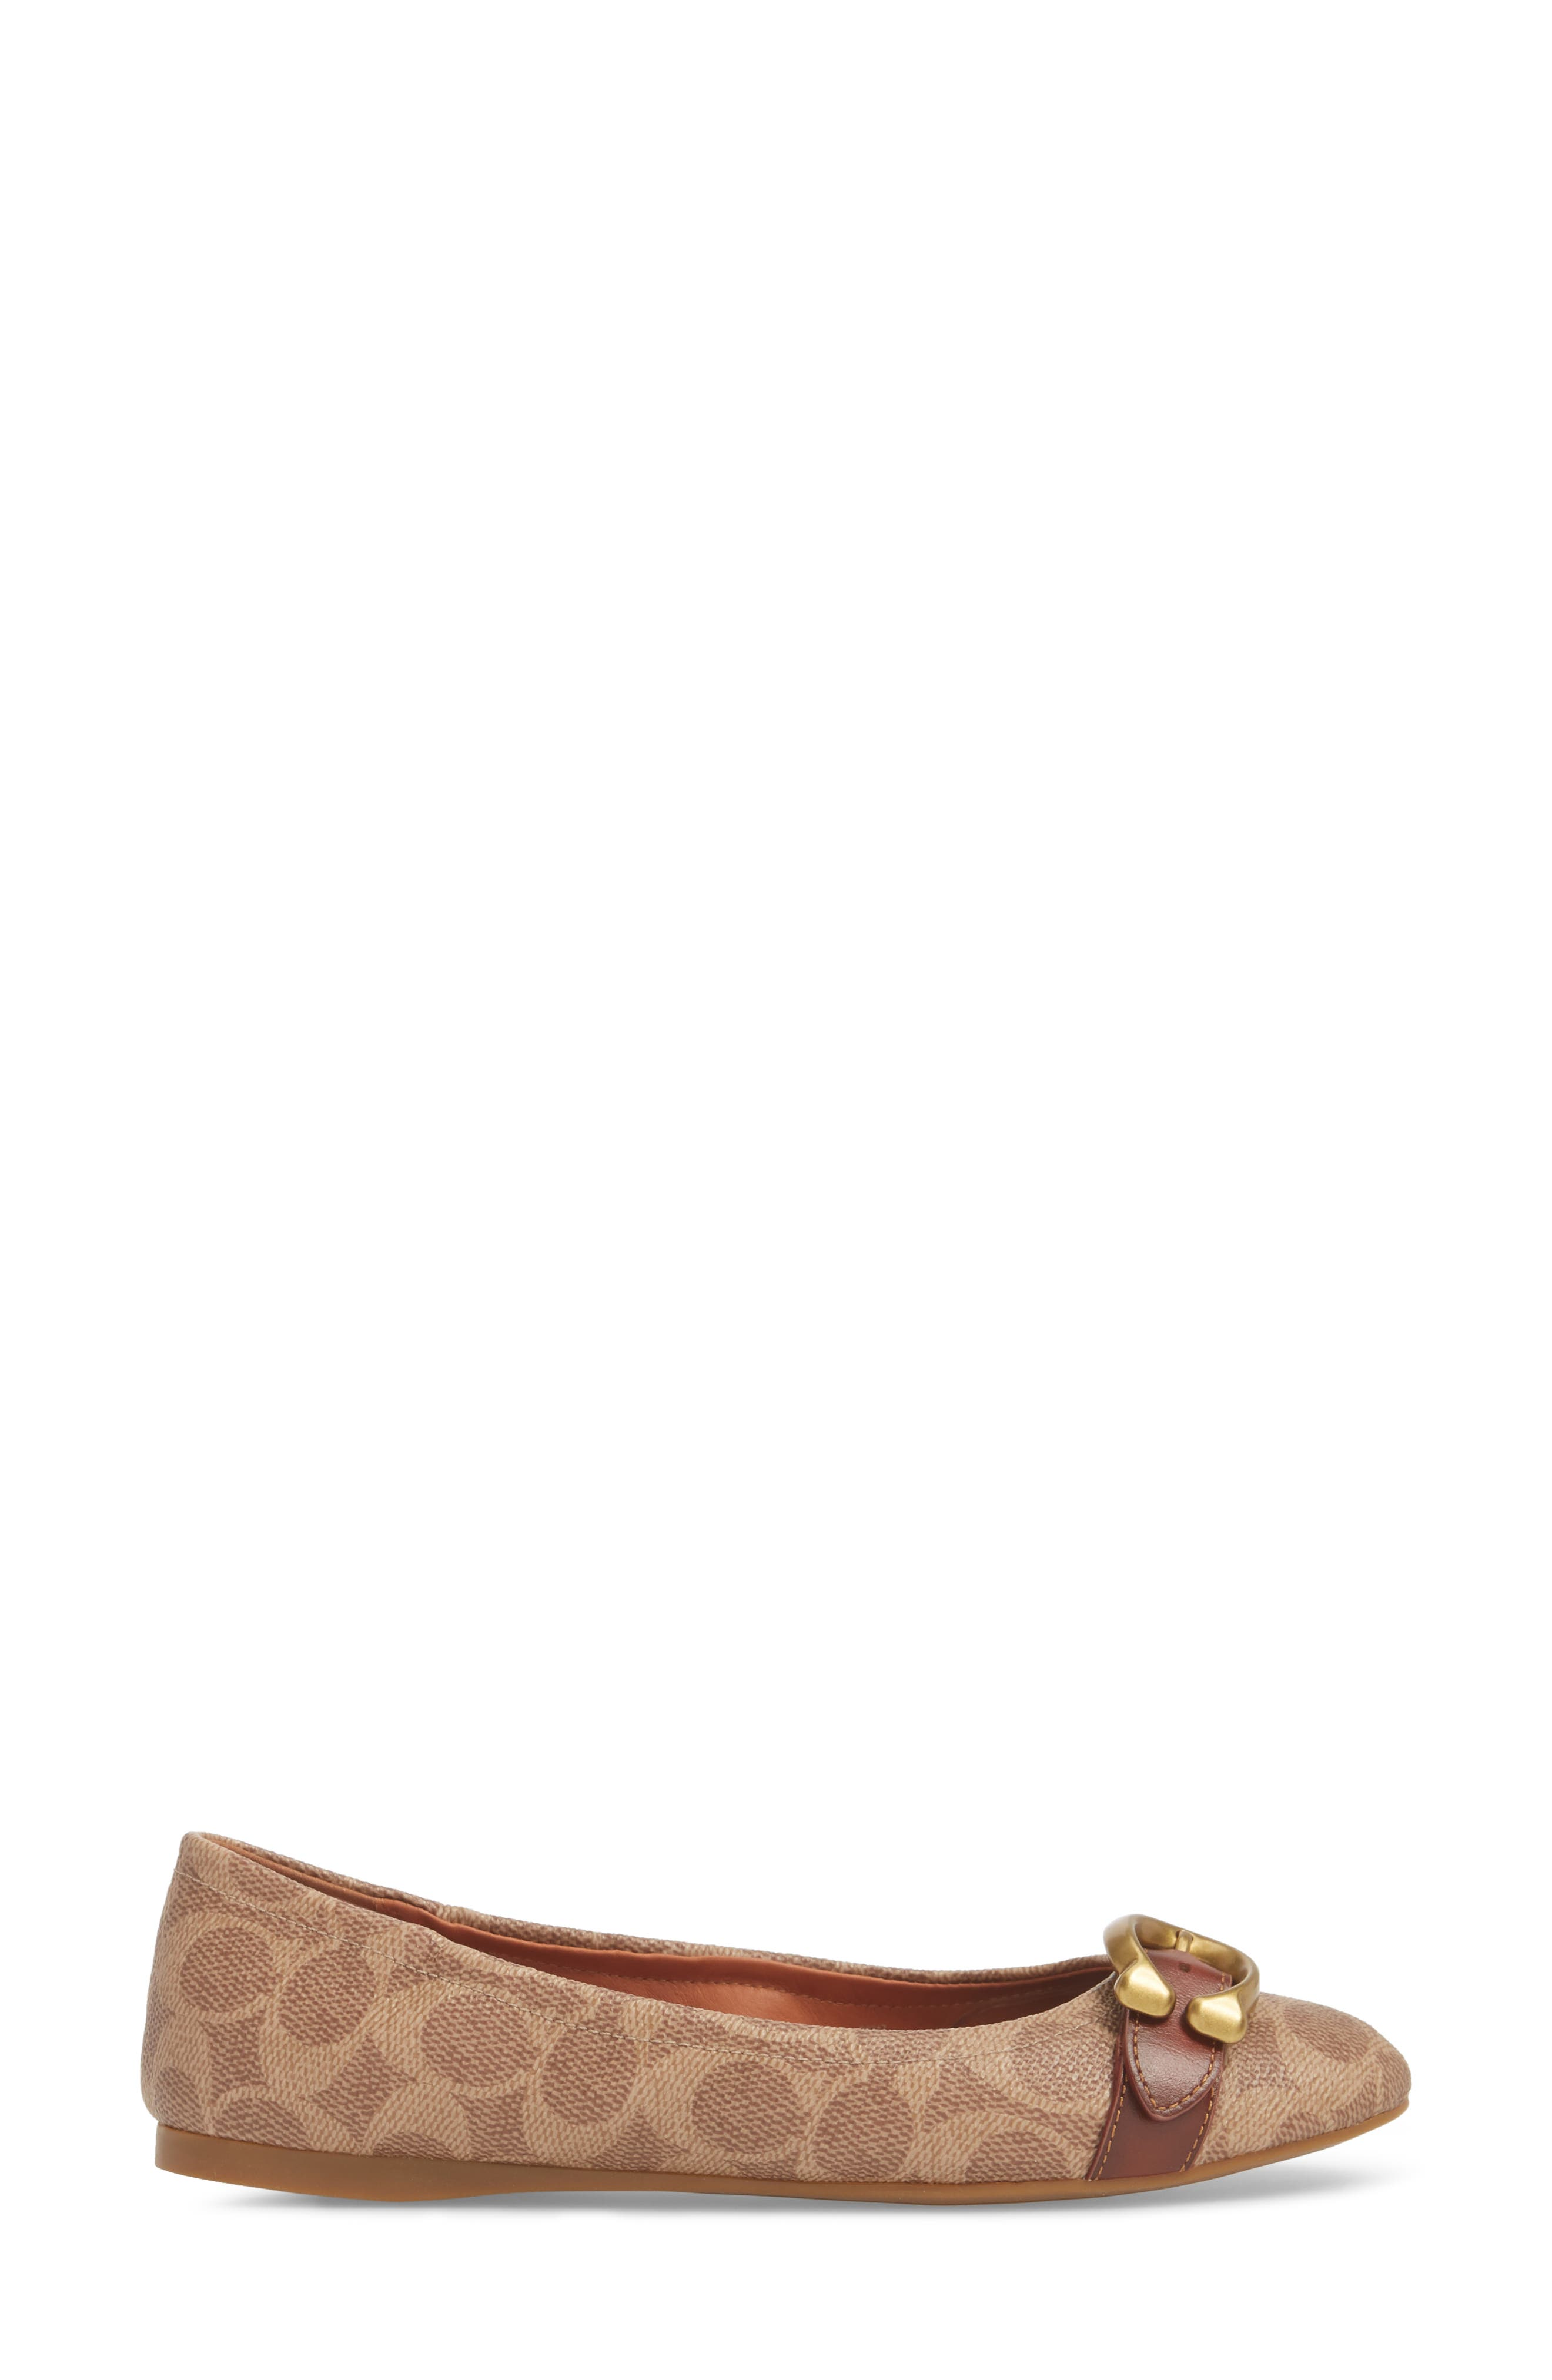 COACH, Stanton Buckle Flat, Alternate thumbnail 3, color, BROWN LEATHER